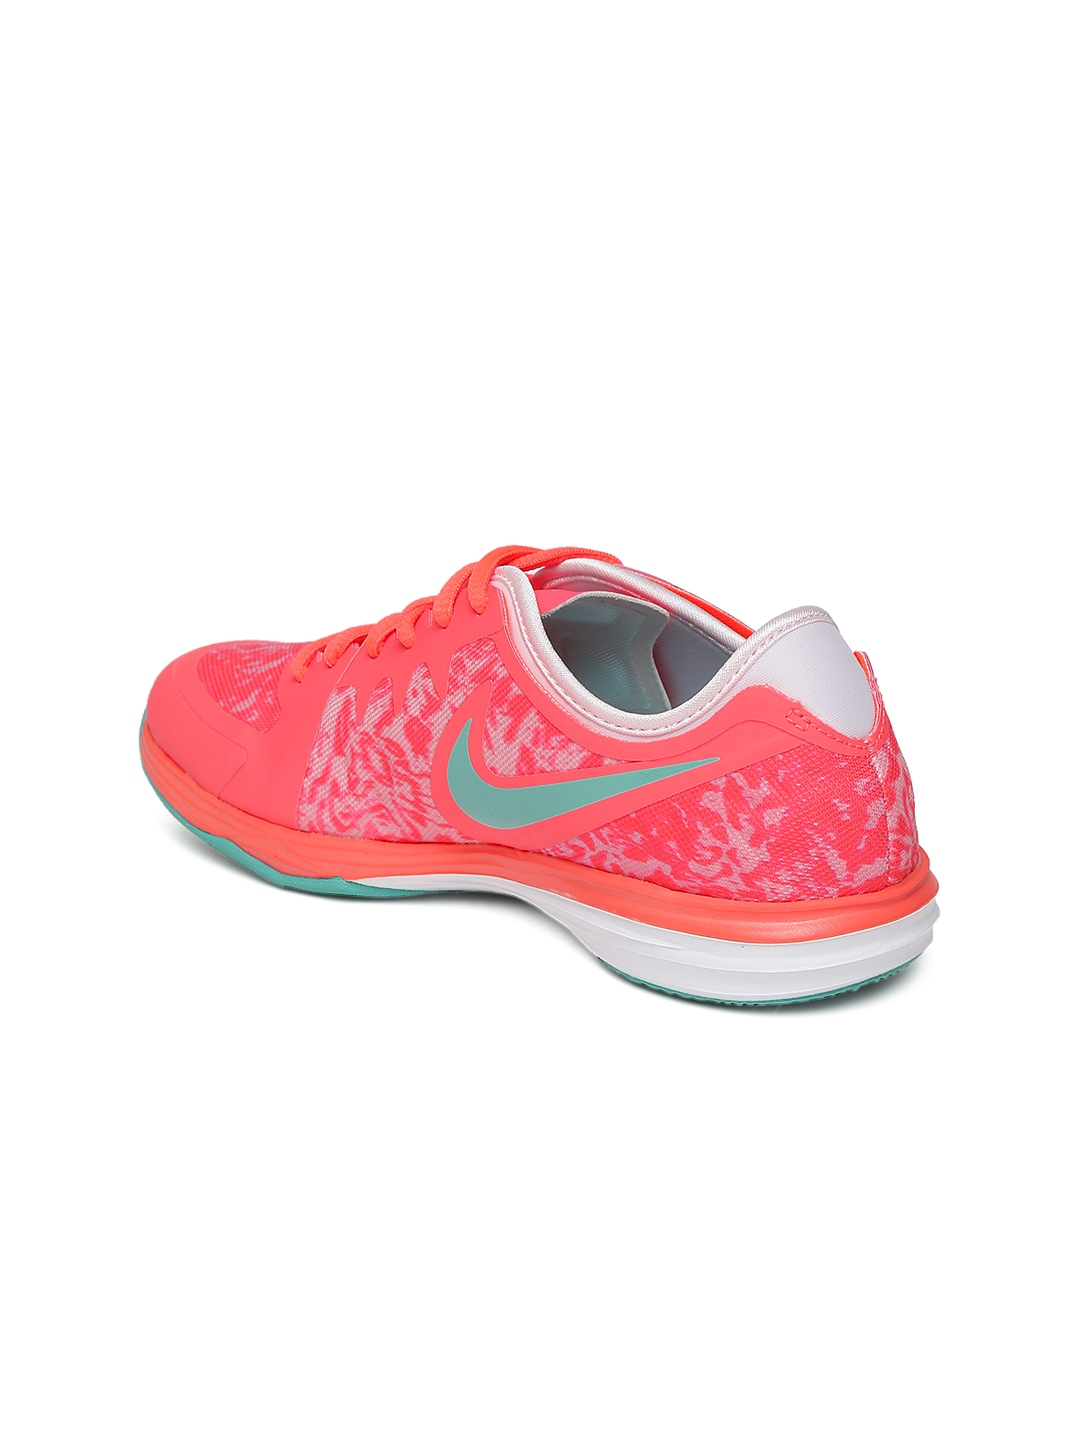 New Home Gt Nike Free Gt Neon Pink Nike Shoes Tumblr